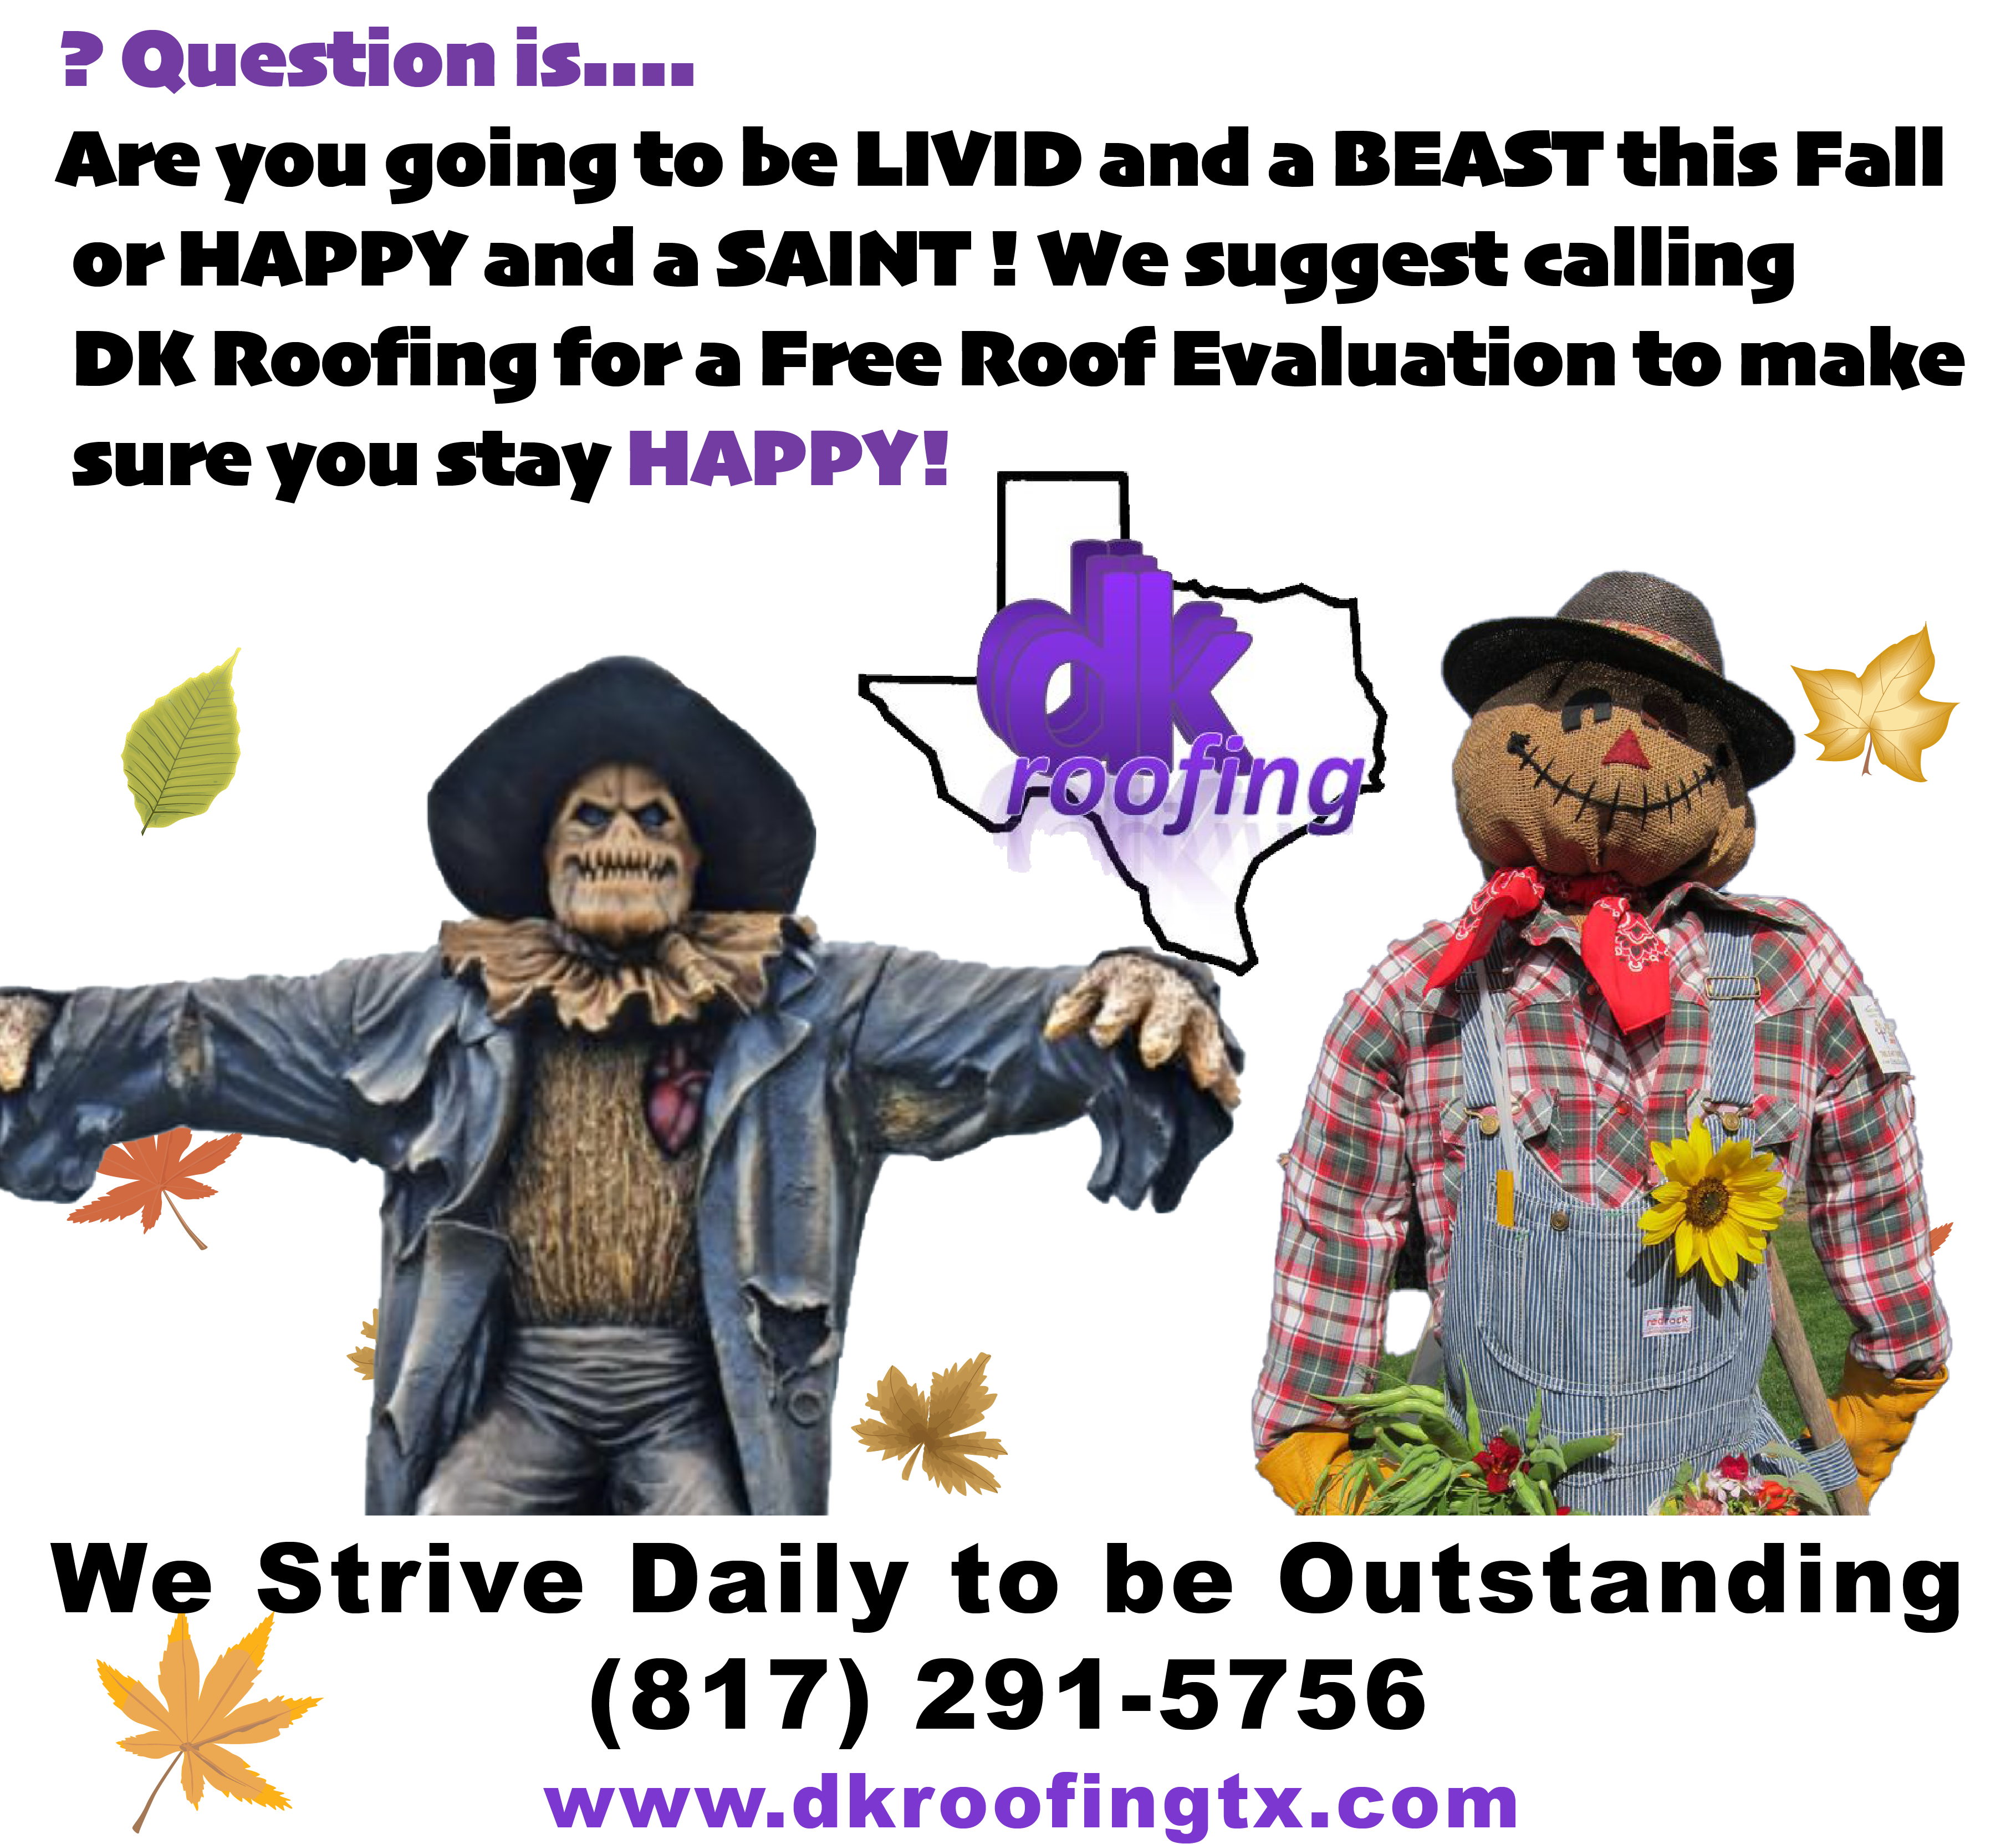 Roofer, North Texas Roofing